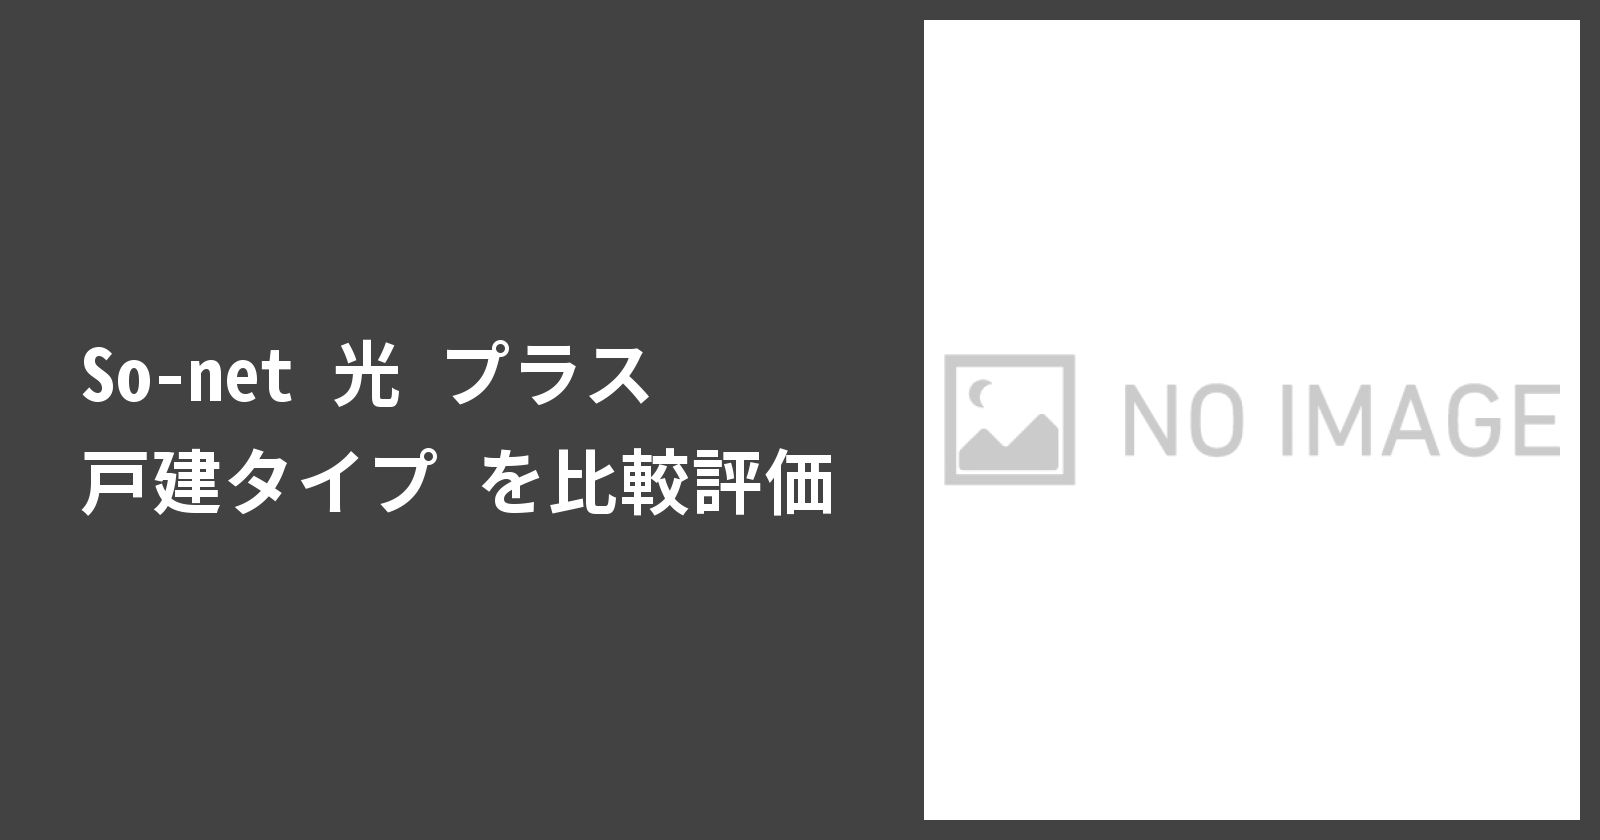 So-net 光 プラス 戸建タイプを徹底評価